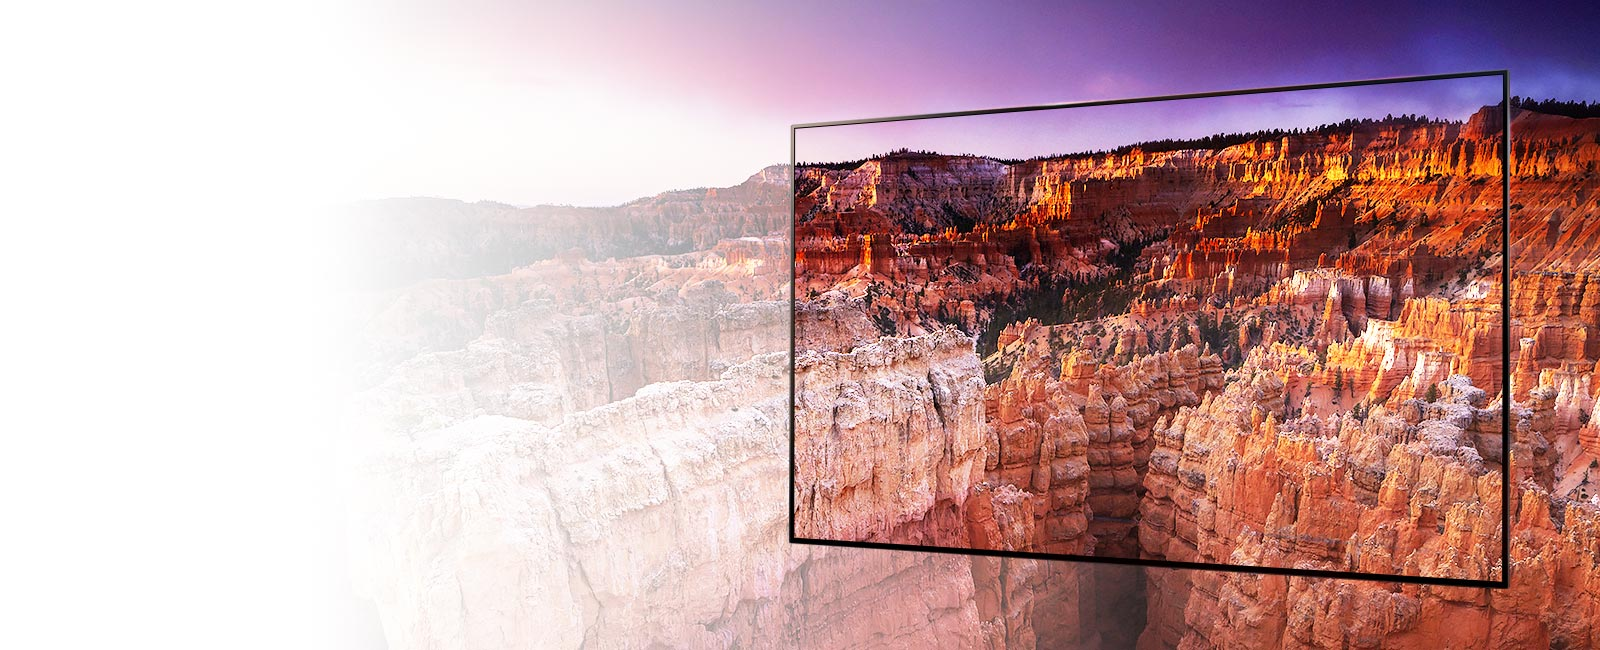 The frame captures landscapes of Bryce Canyon National Park